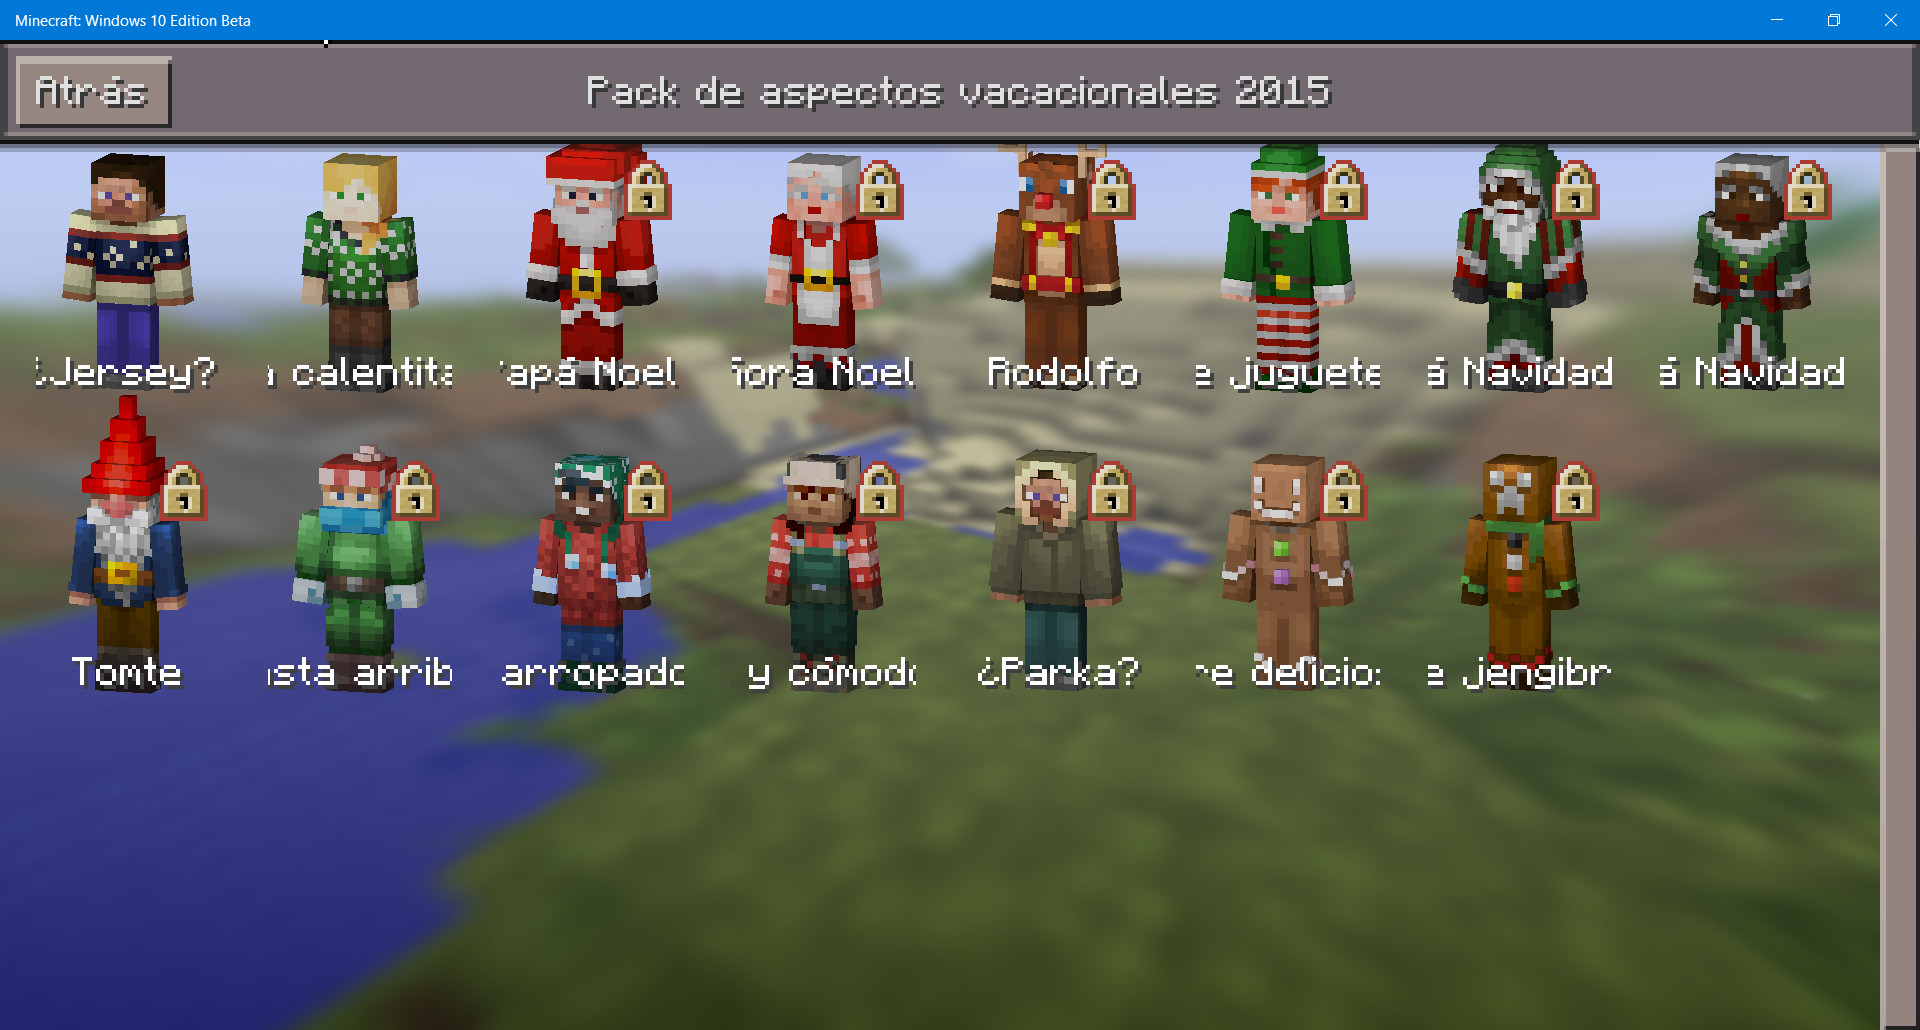 Minecraft Pocket Y Windows Edition También Se Vuelven Navideños - Skins para minecraft windows 10 edition beta